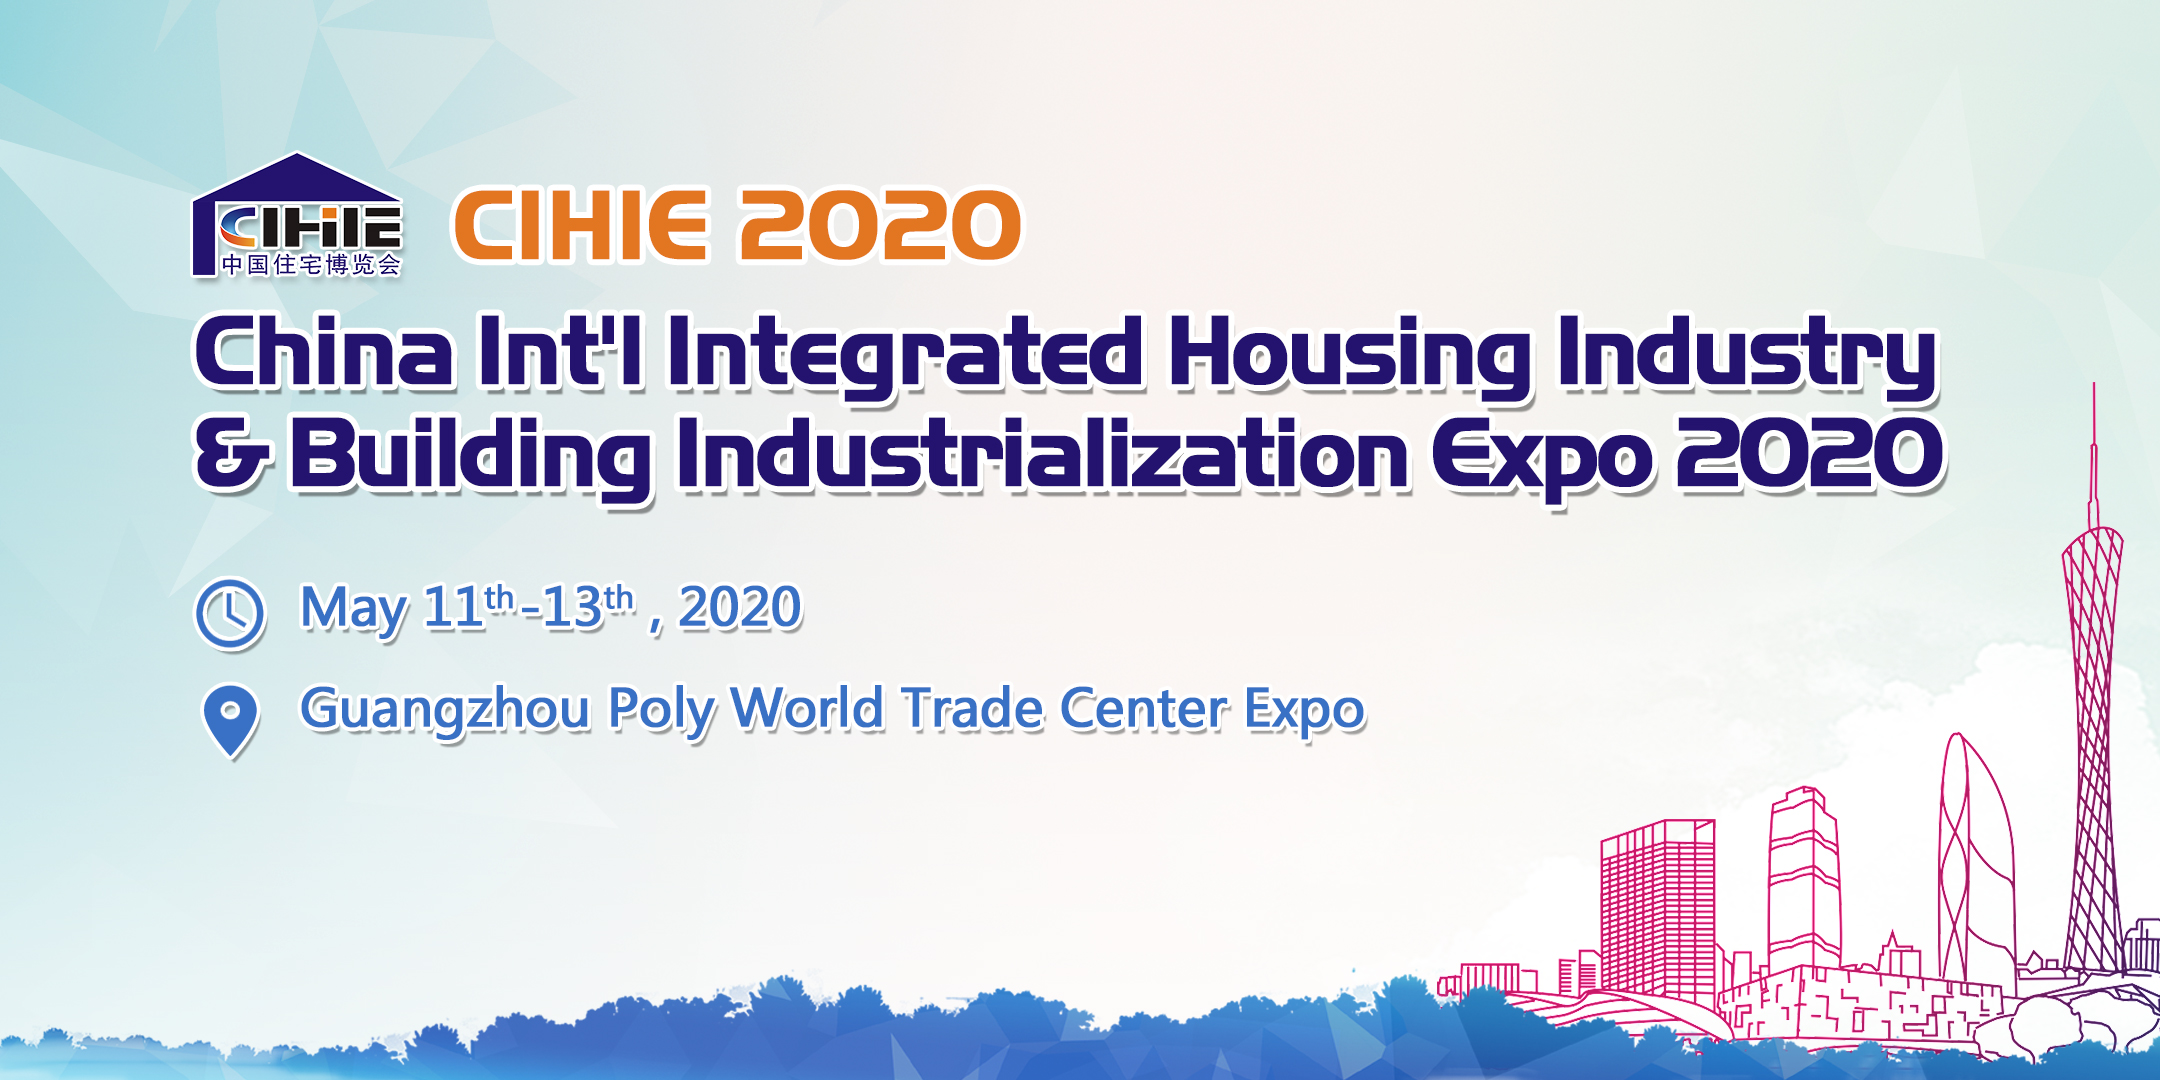 China Int'l Integrated Housing Industry & Building Industrialization Expo (CIHIE 2020), Guangzhou, Guangdong, China